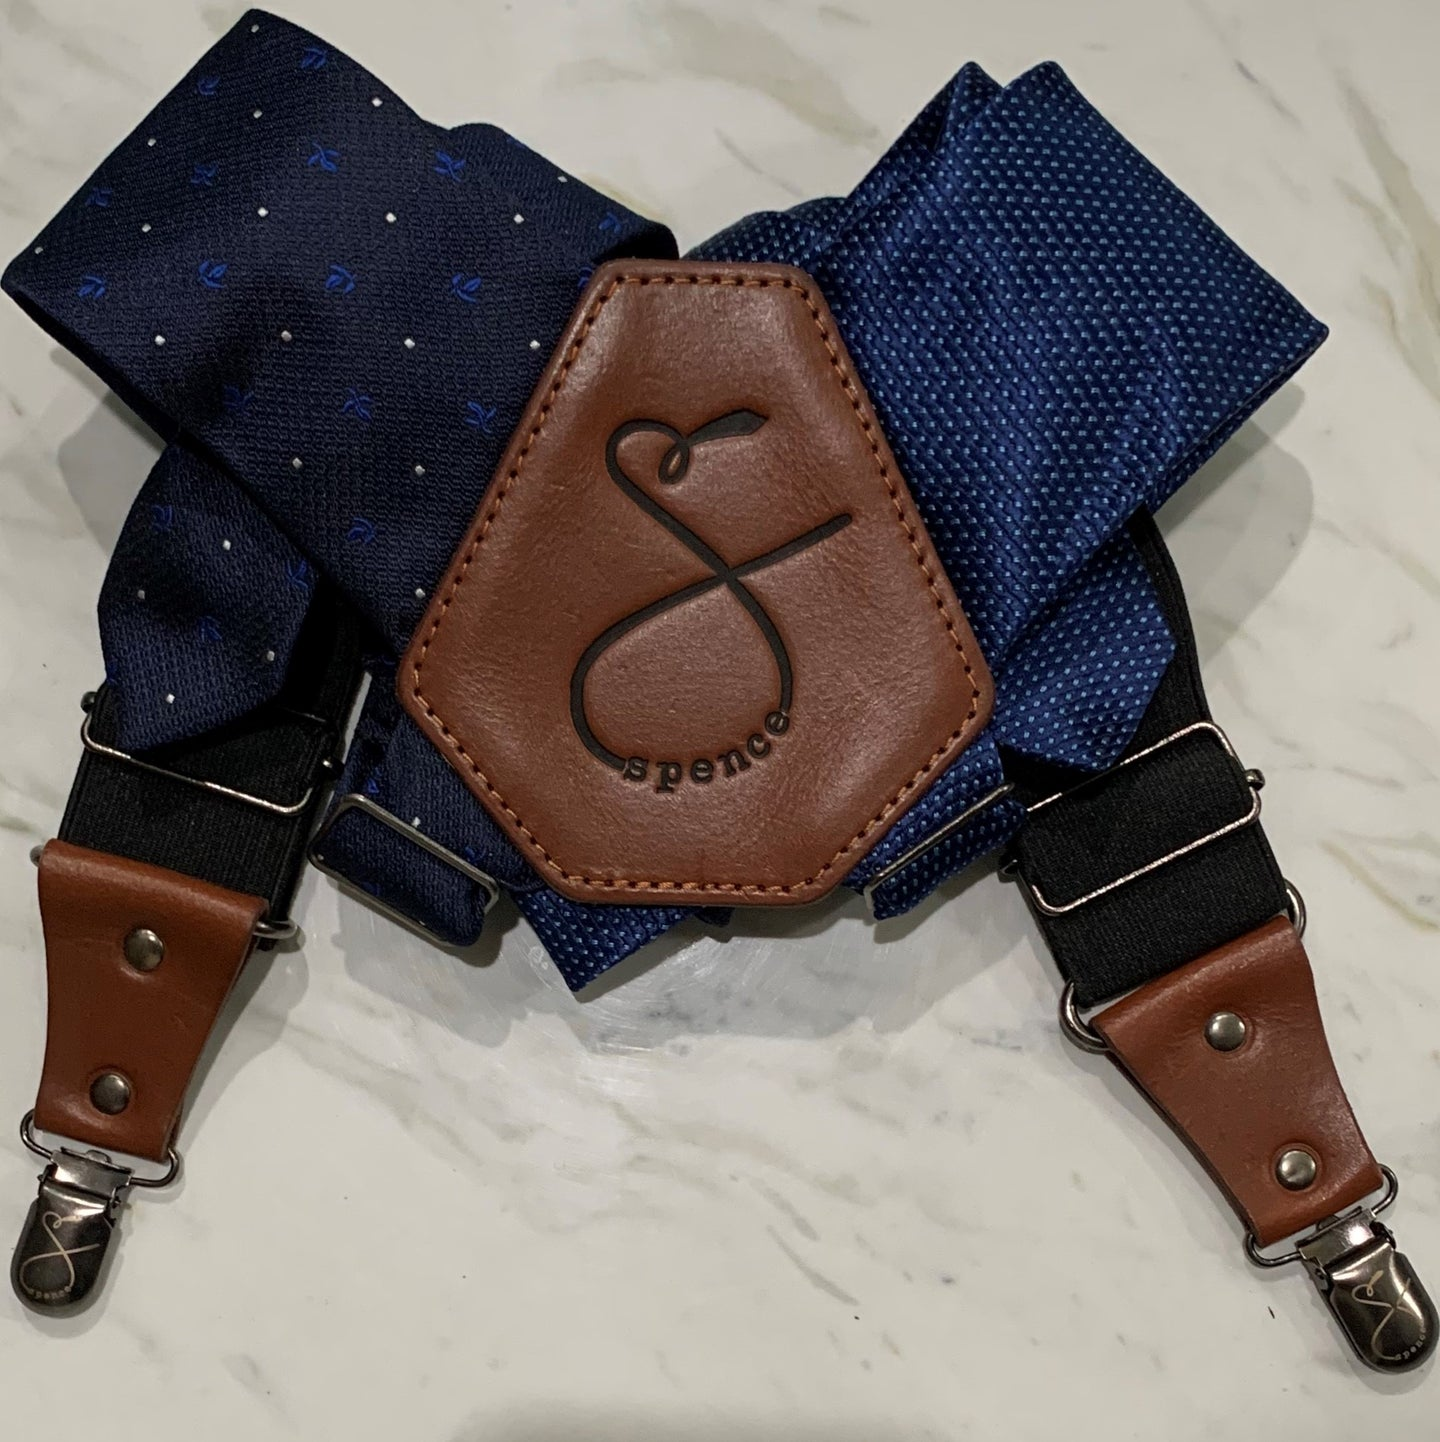 s p e n c e - navy blue and navy blue